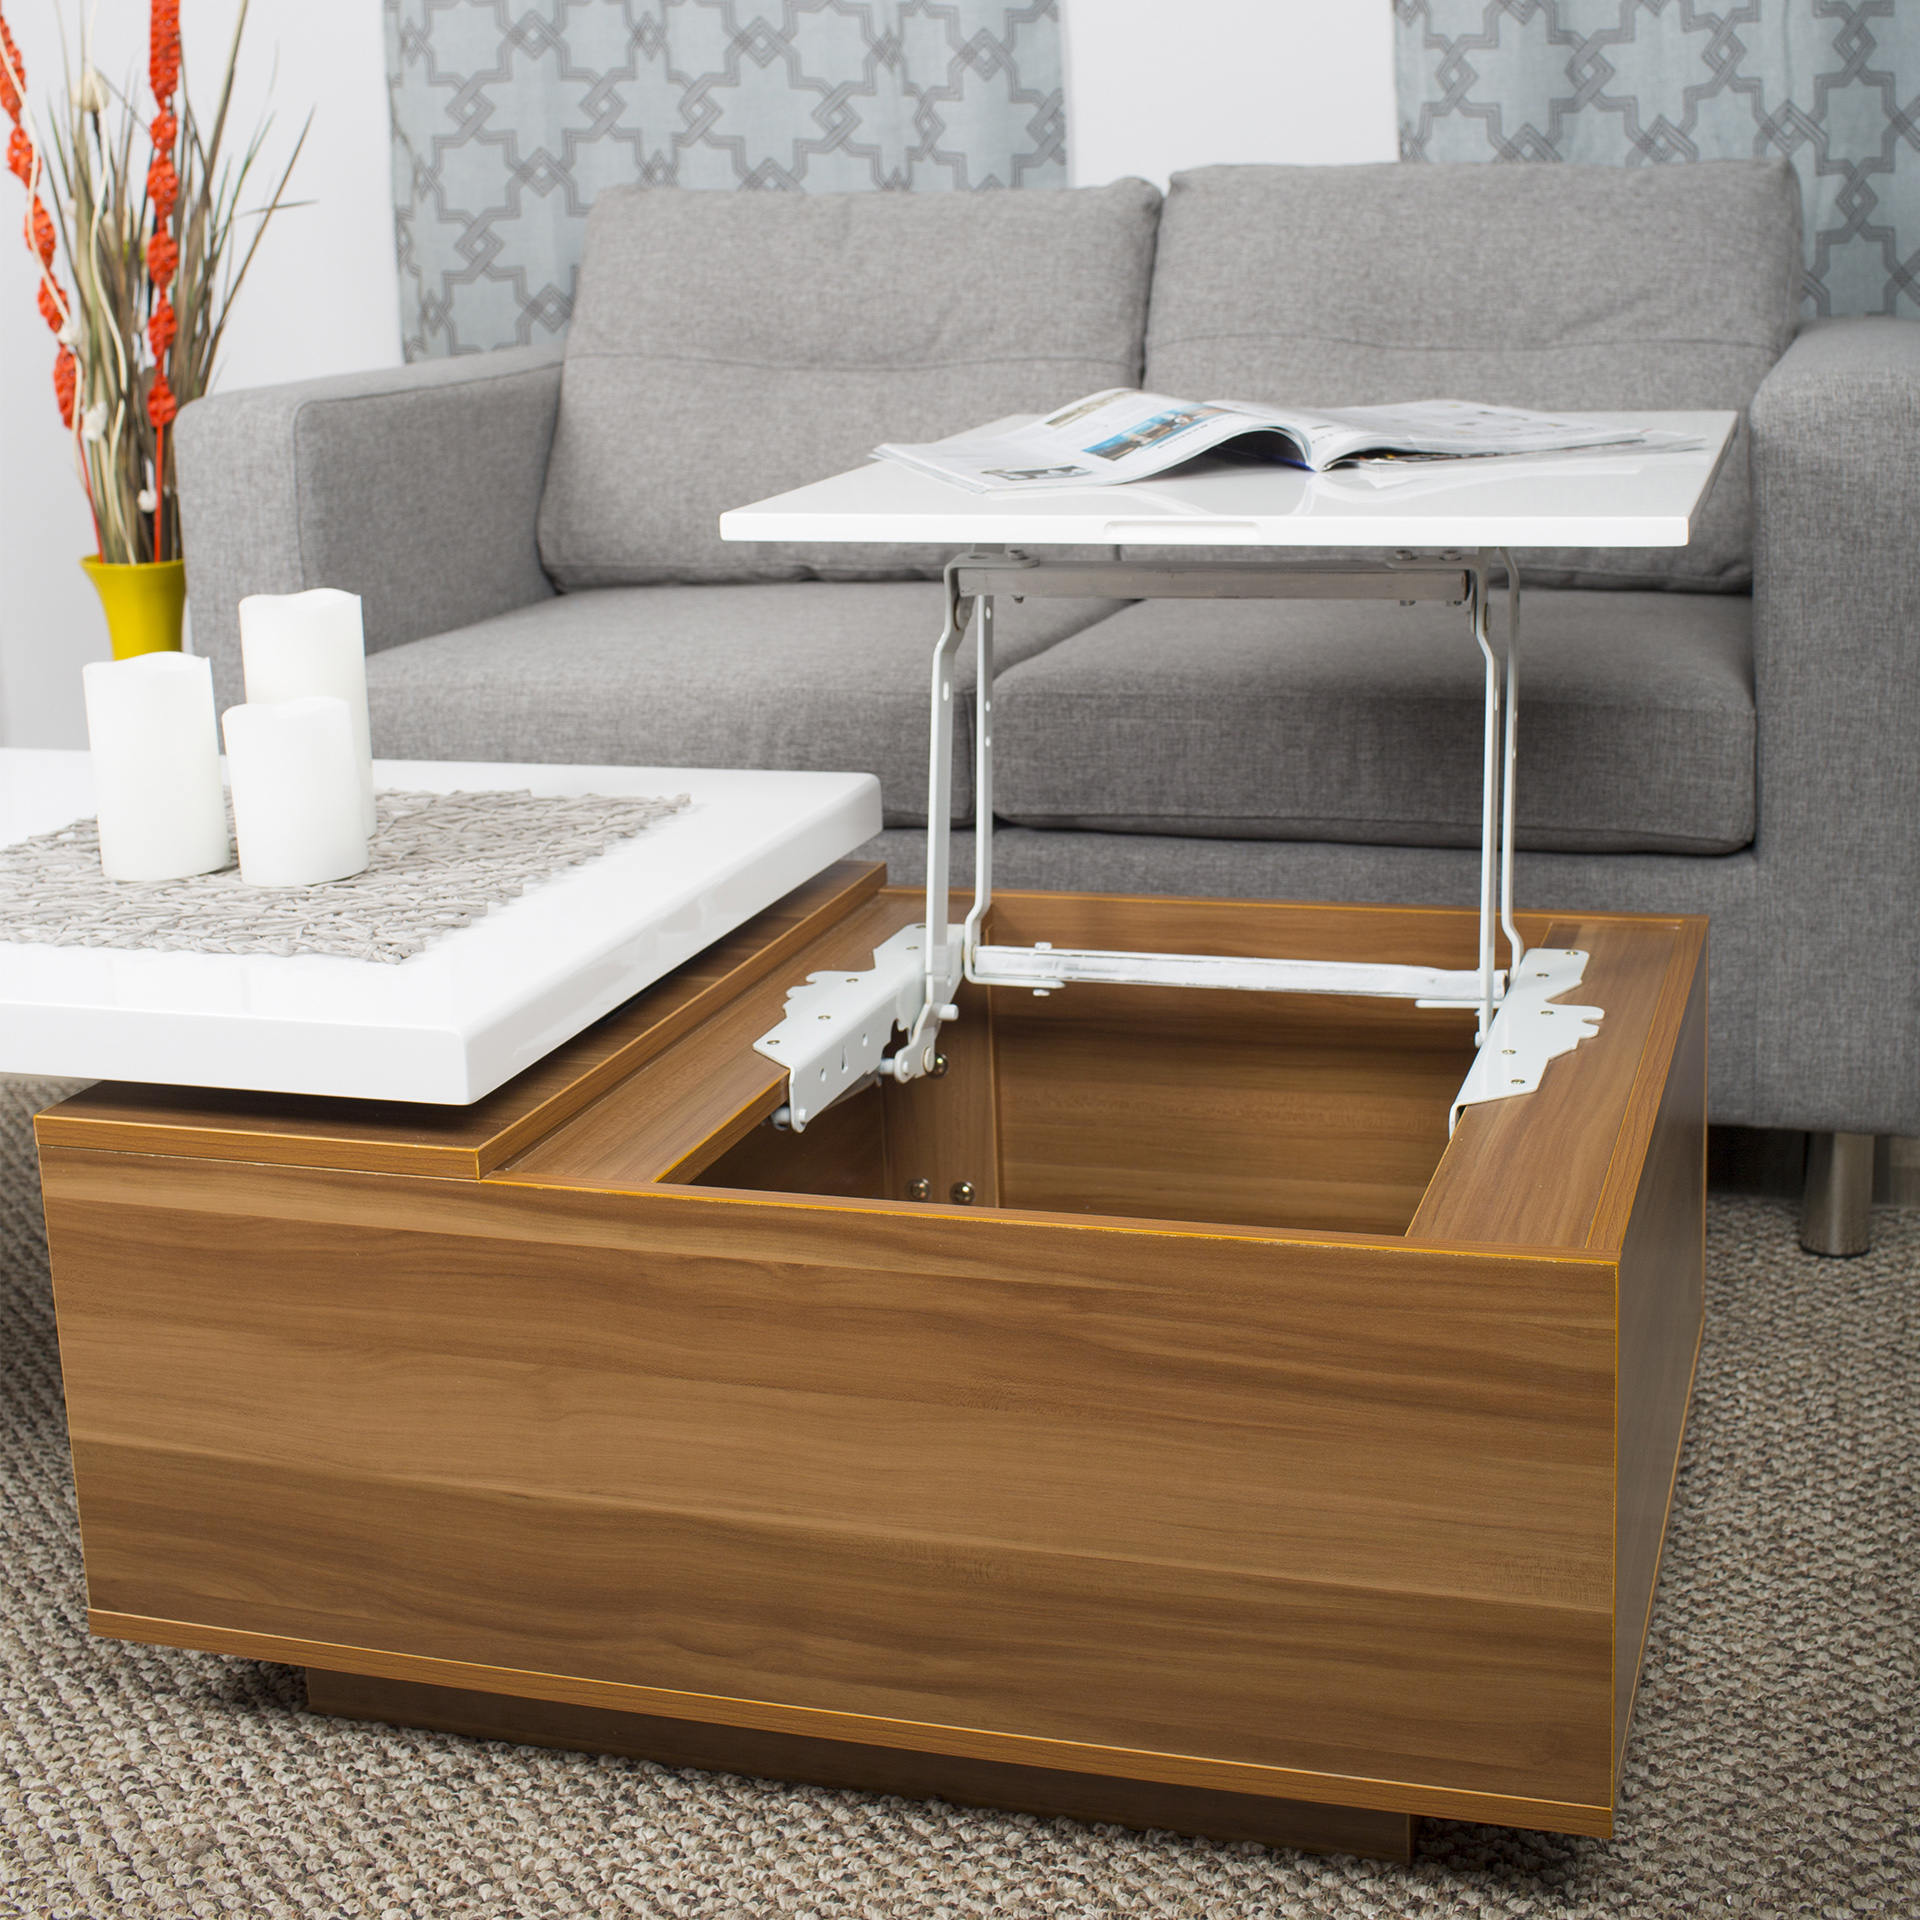 Adele White Lacquer High Gloss Walnut Melamine Veneer Wood Coffee